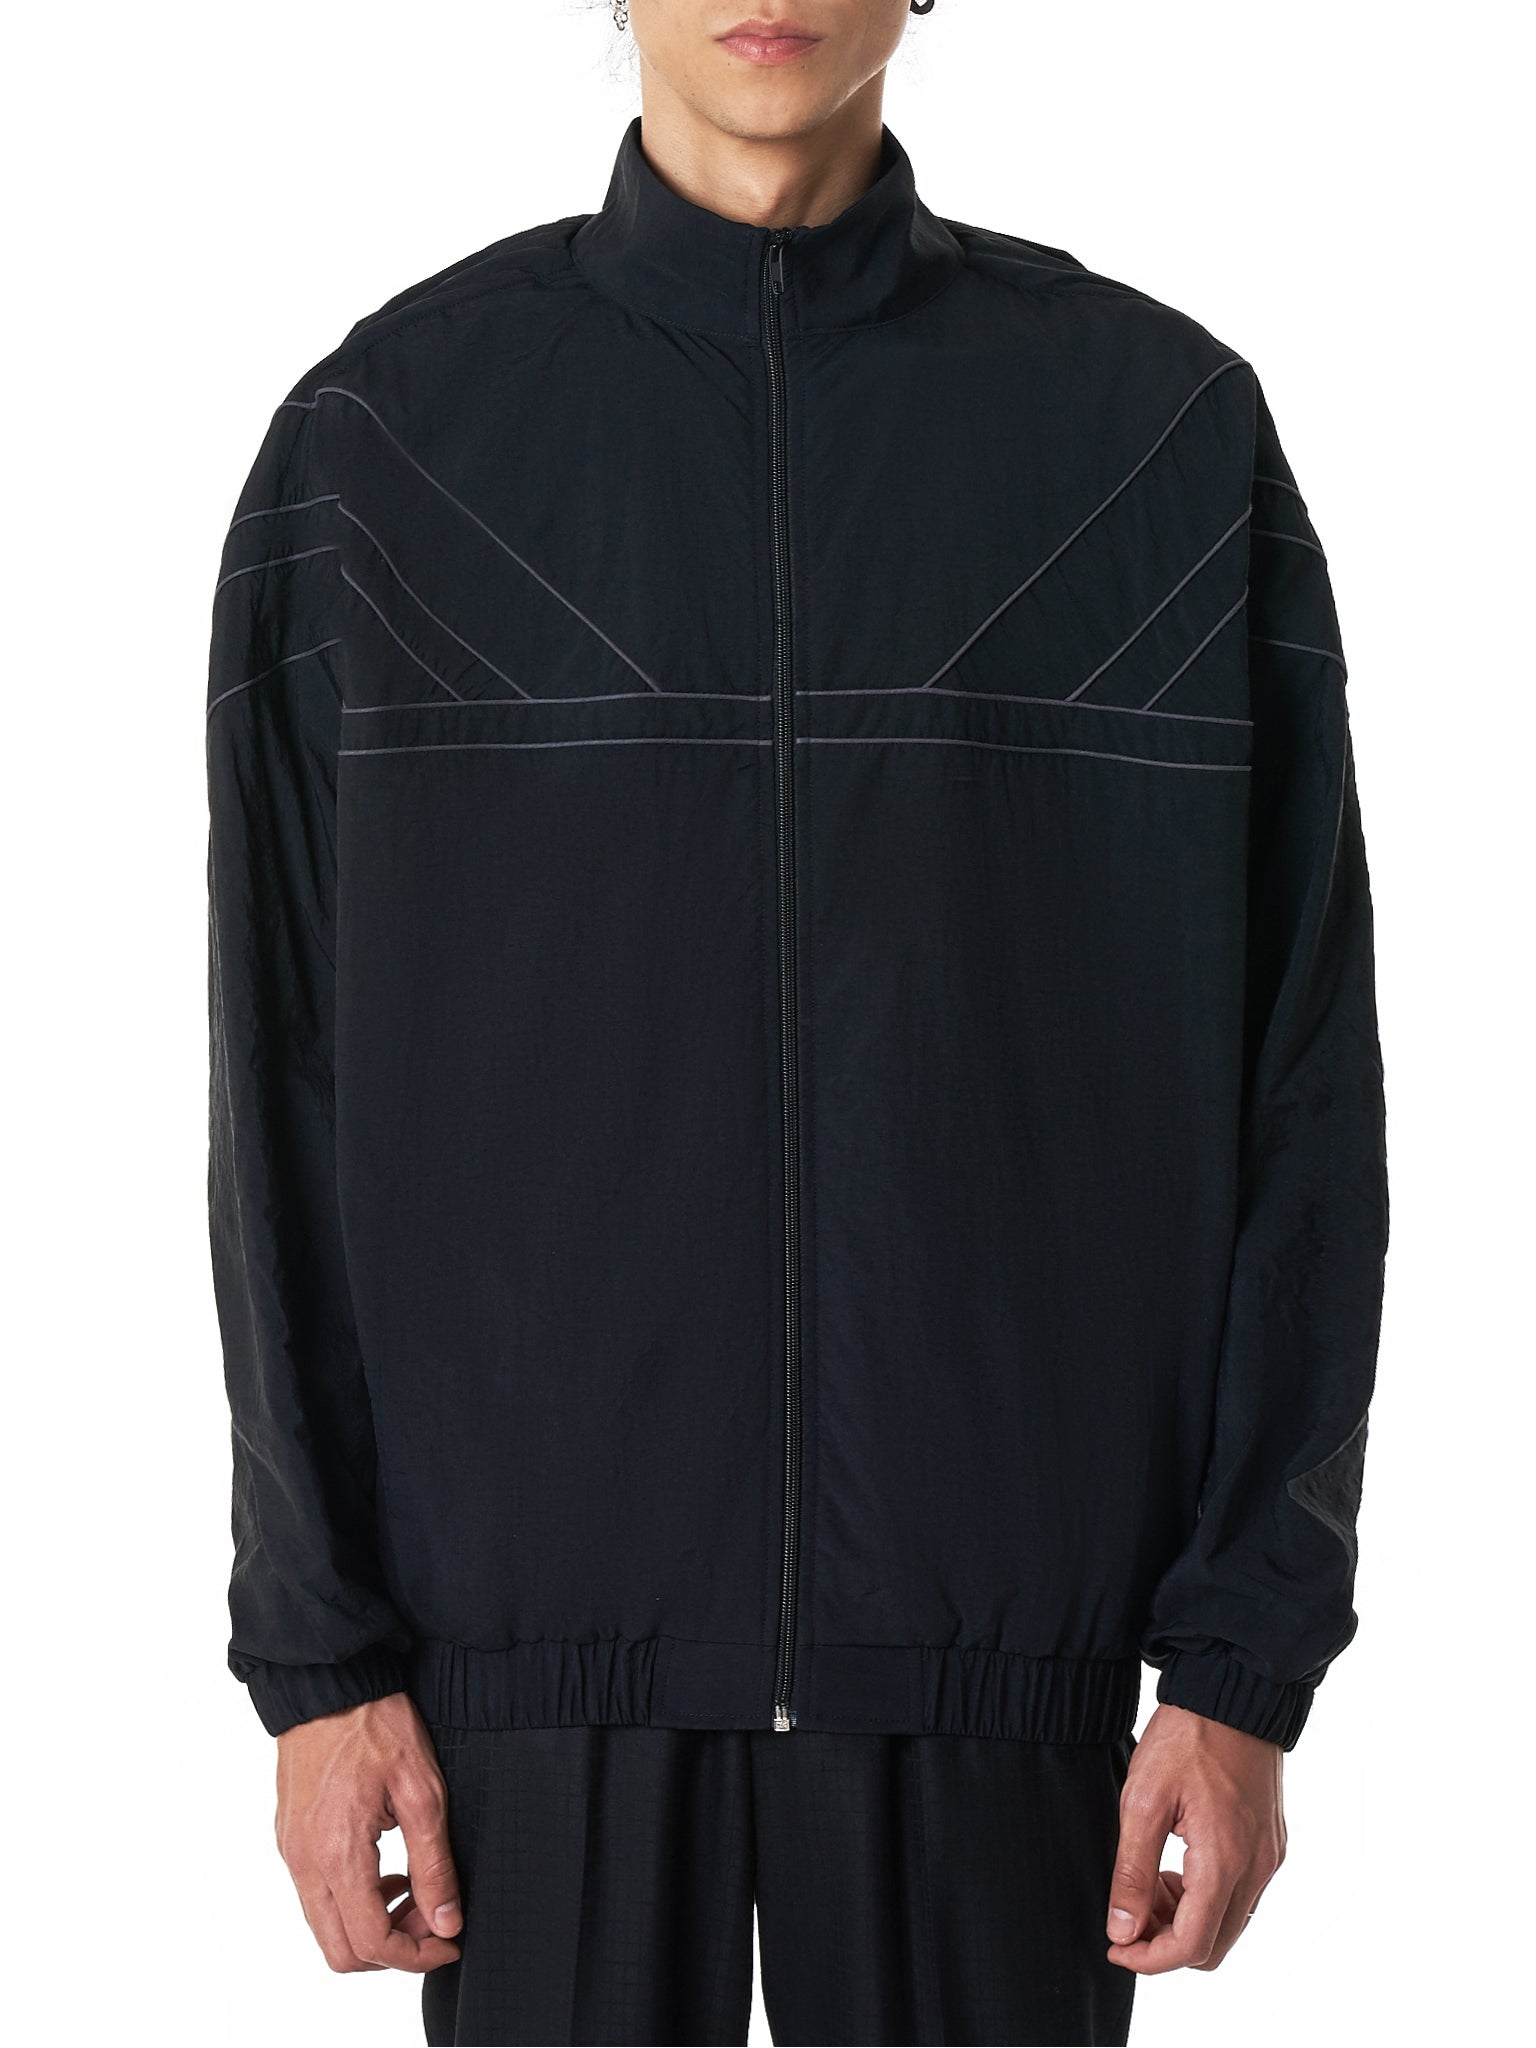 Y/Project Jacket - Hlorenzo Front